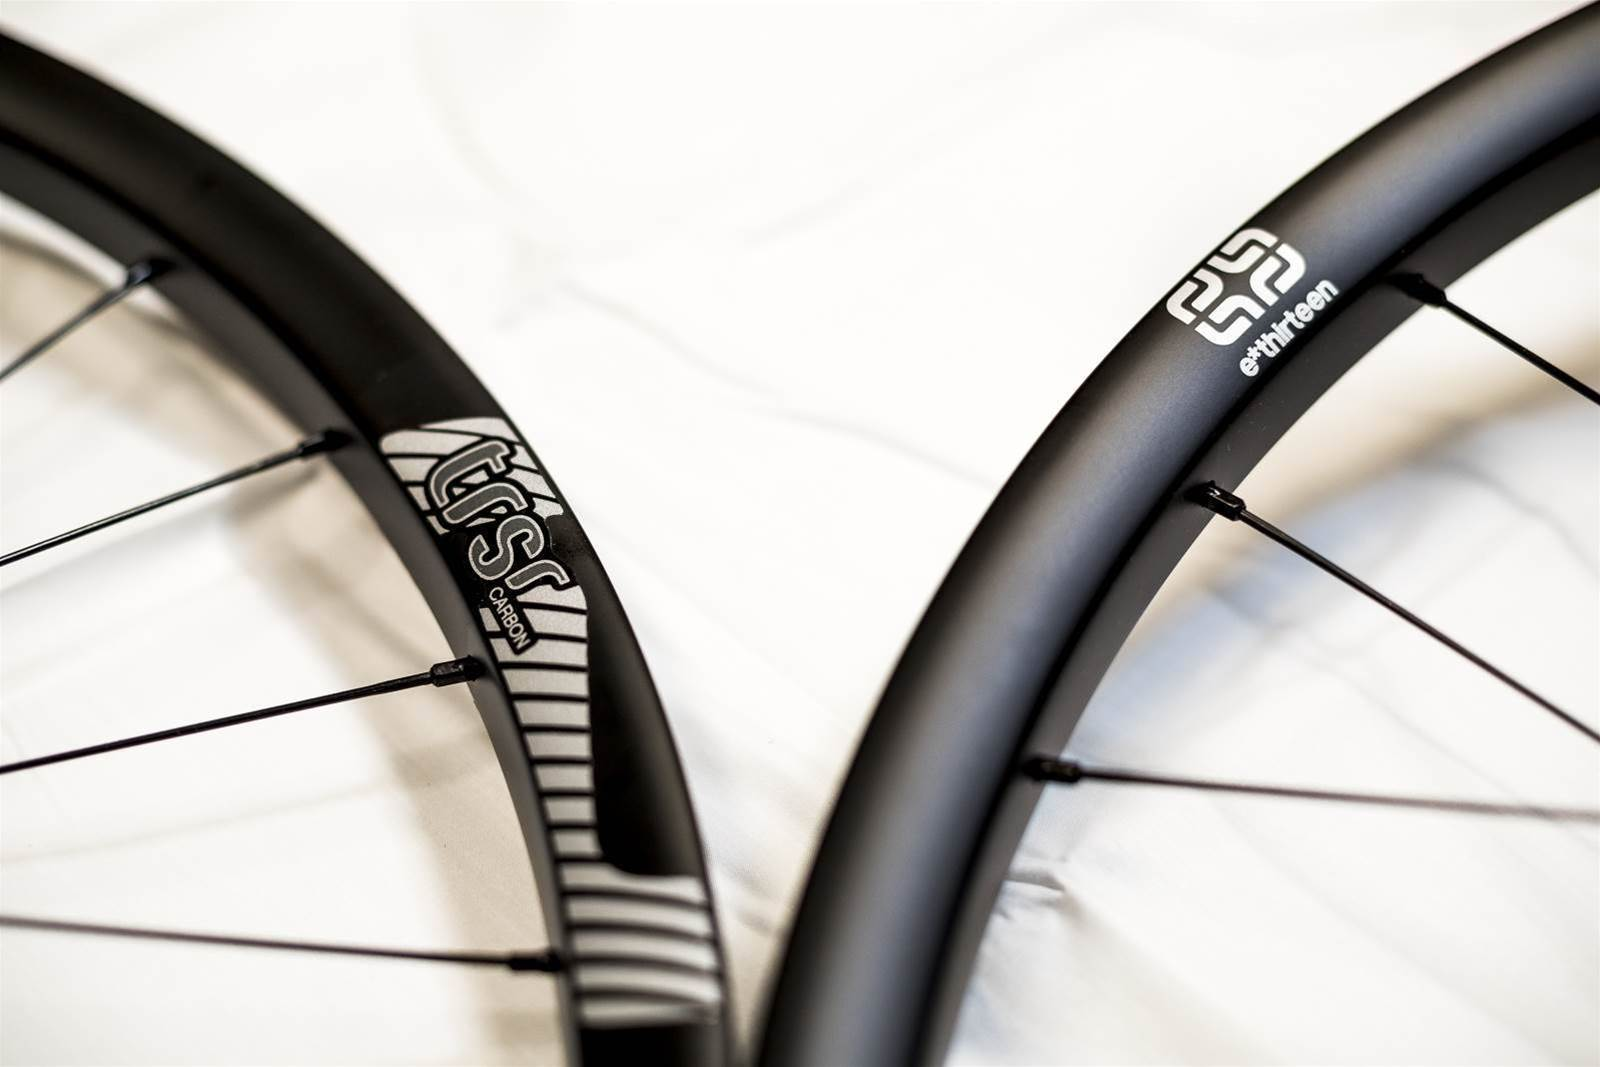 TESTED: E13 TRSr SL carbon wheels